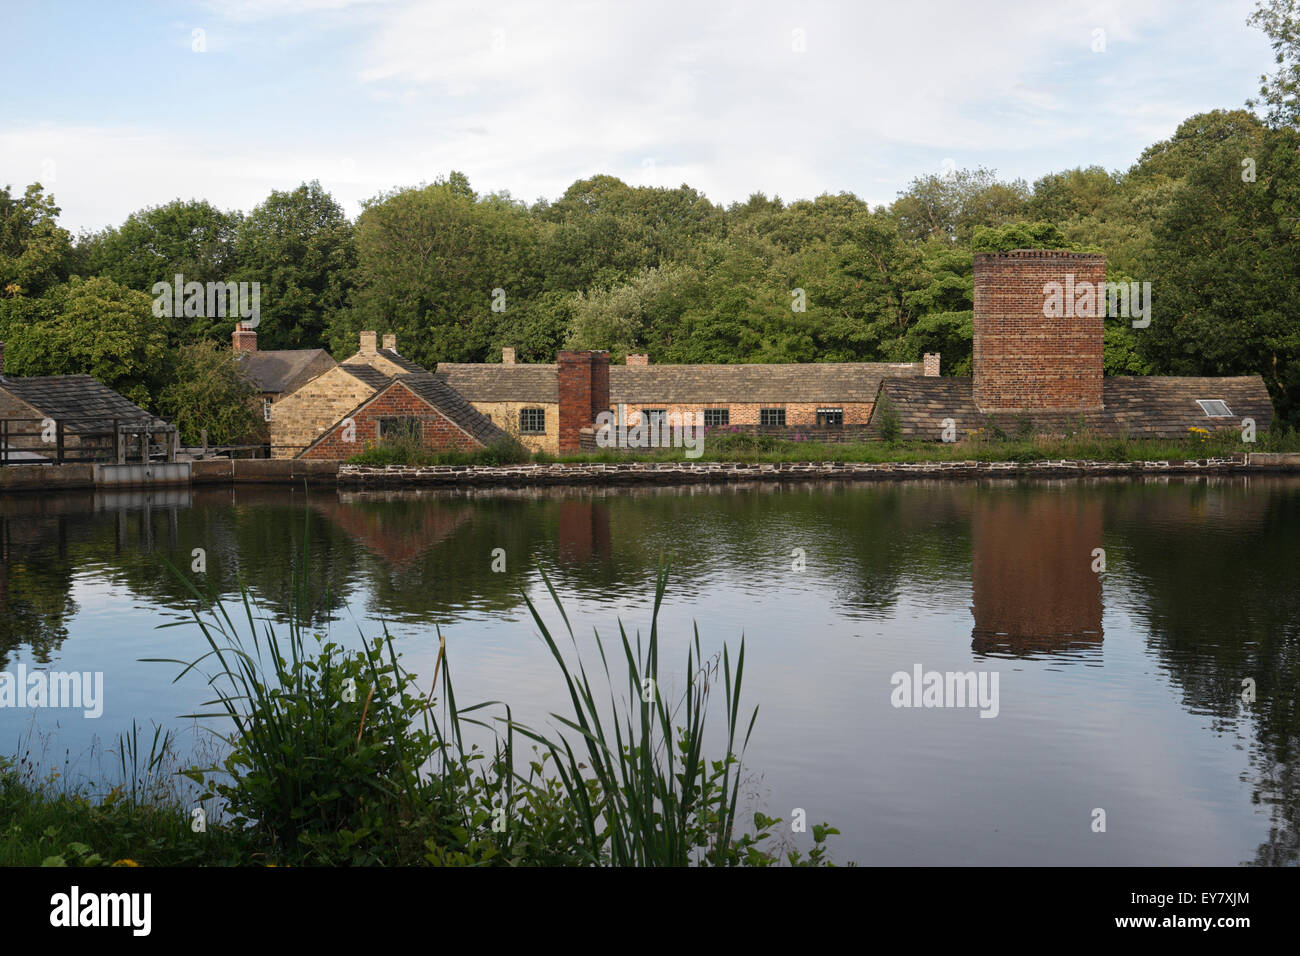 Abbeydale Industrial Hamlet and the Dam, Sheffield England - Stock Image